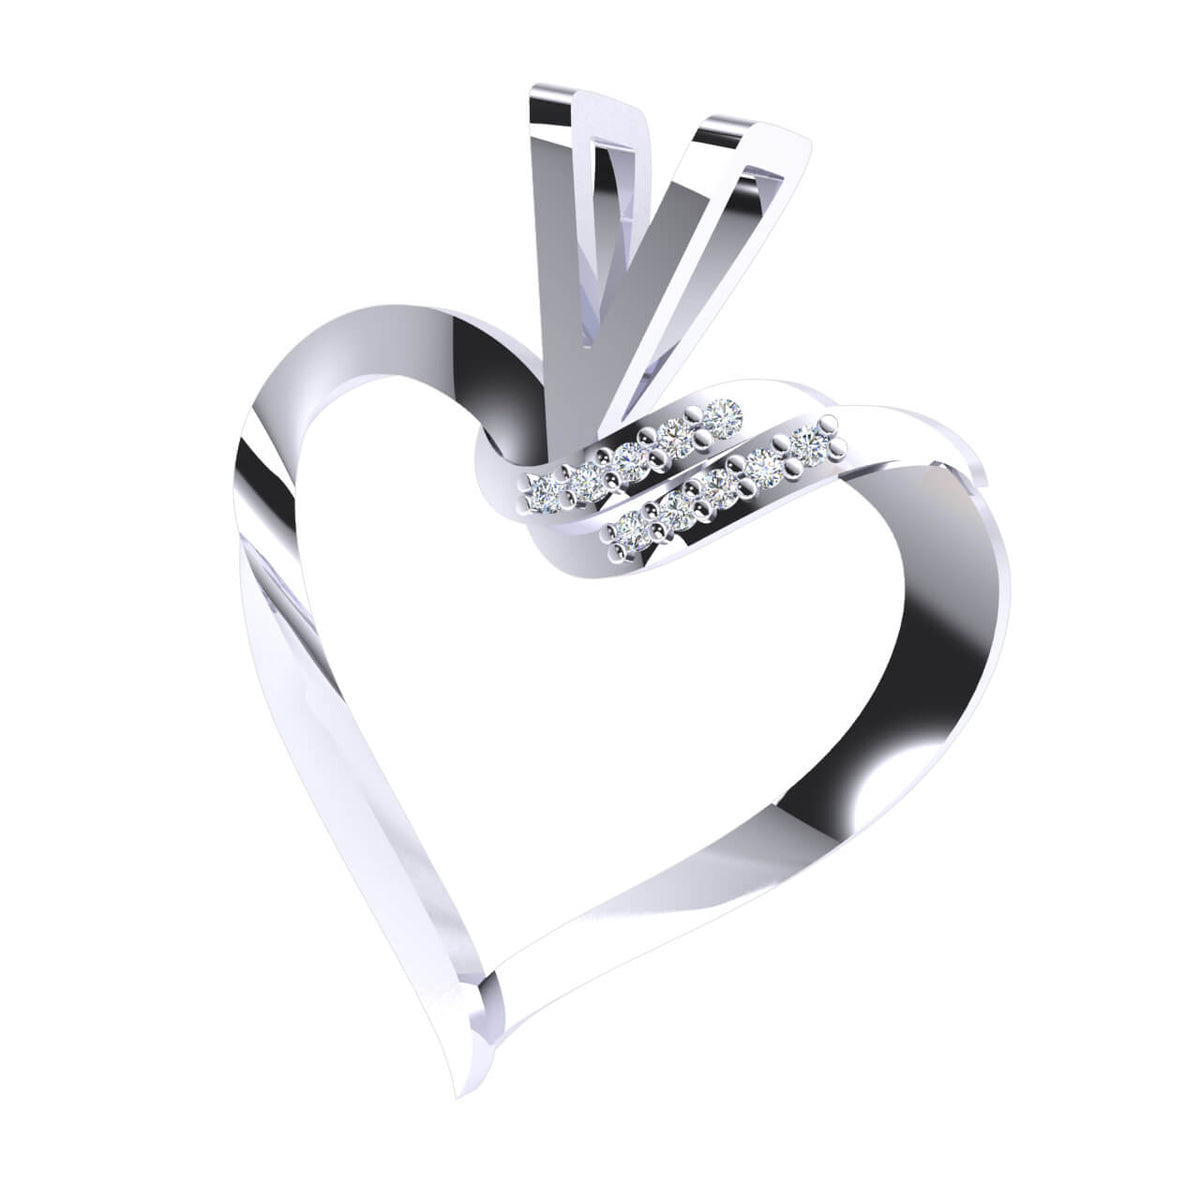 0.05 Ct Round GH I1-I2 Diamond Heart Pendant For Women 925 Sterling Silver